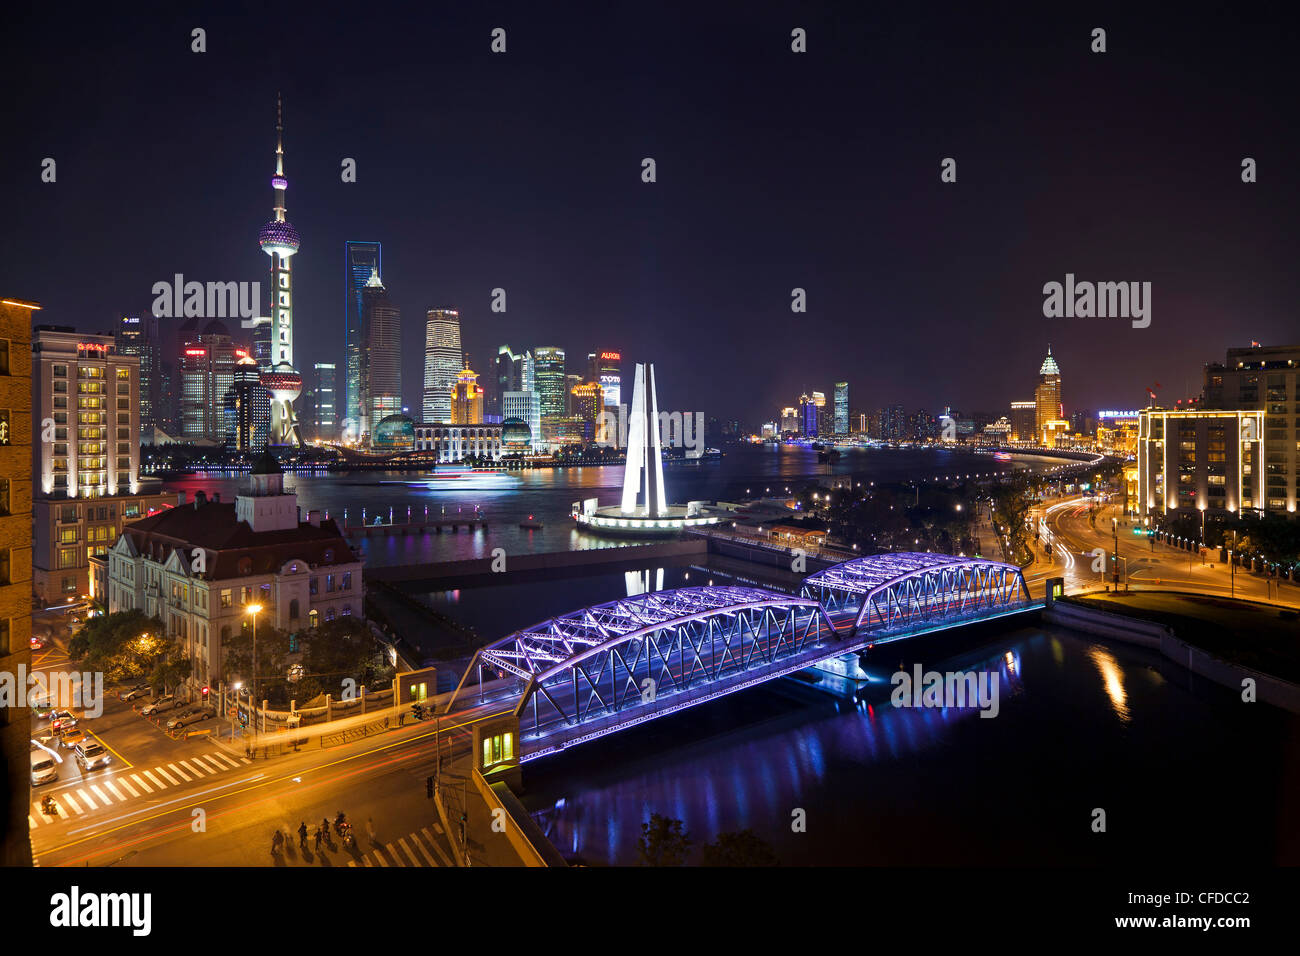 New Pudong skyline, Waibaidu (Garden) Bridge, looking across the Huangpu River from the Bund, Shanghai, China, Asia Stock Photo